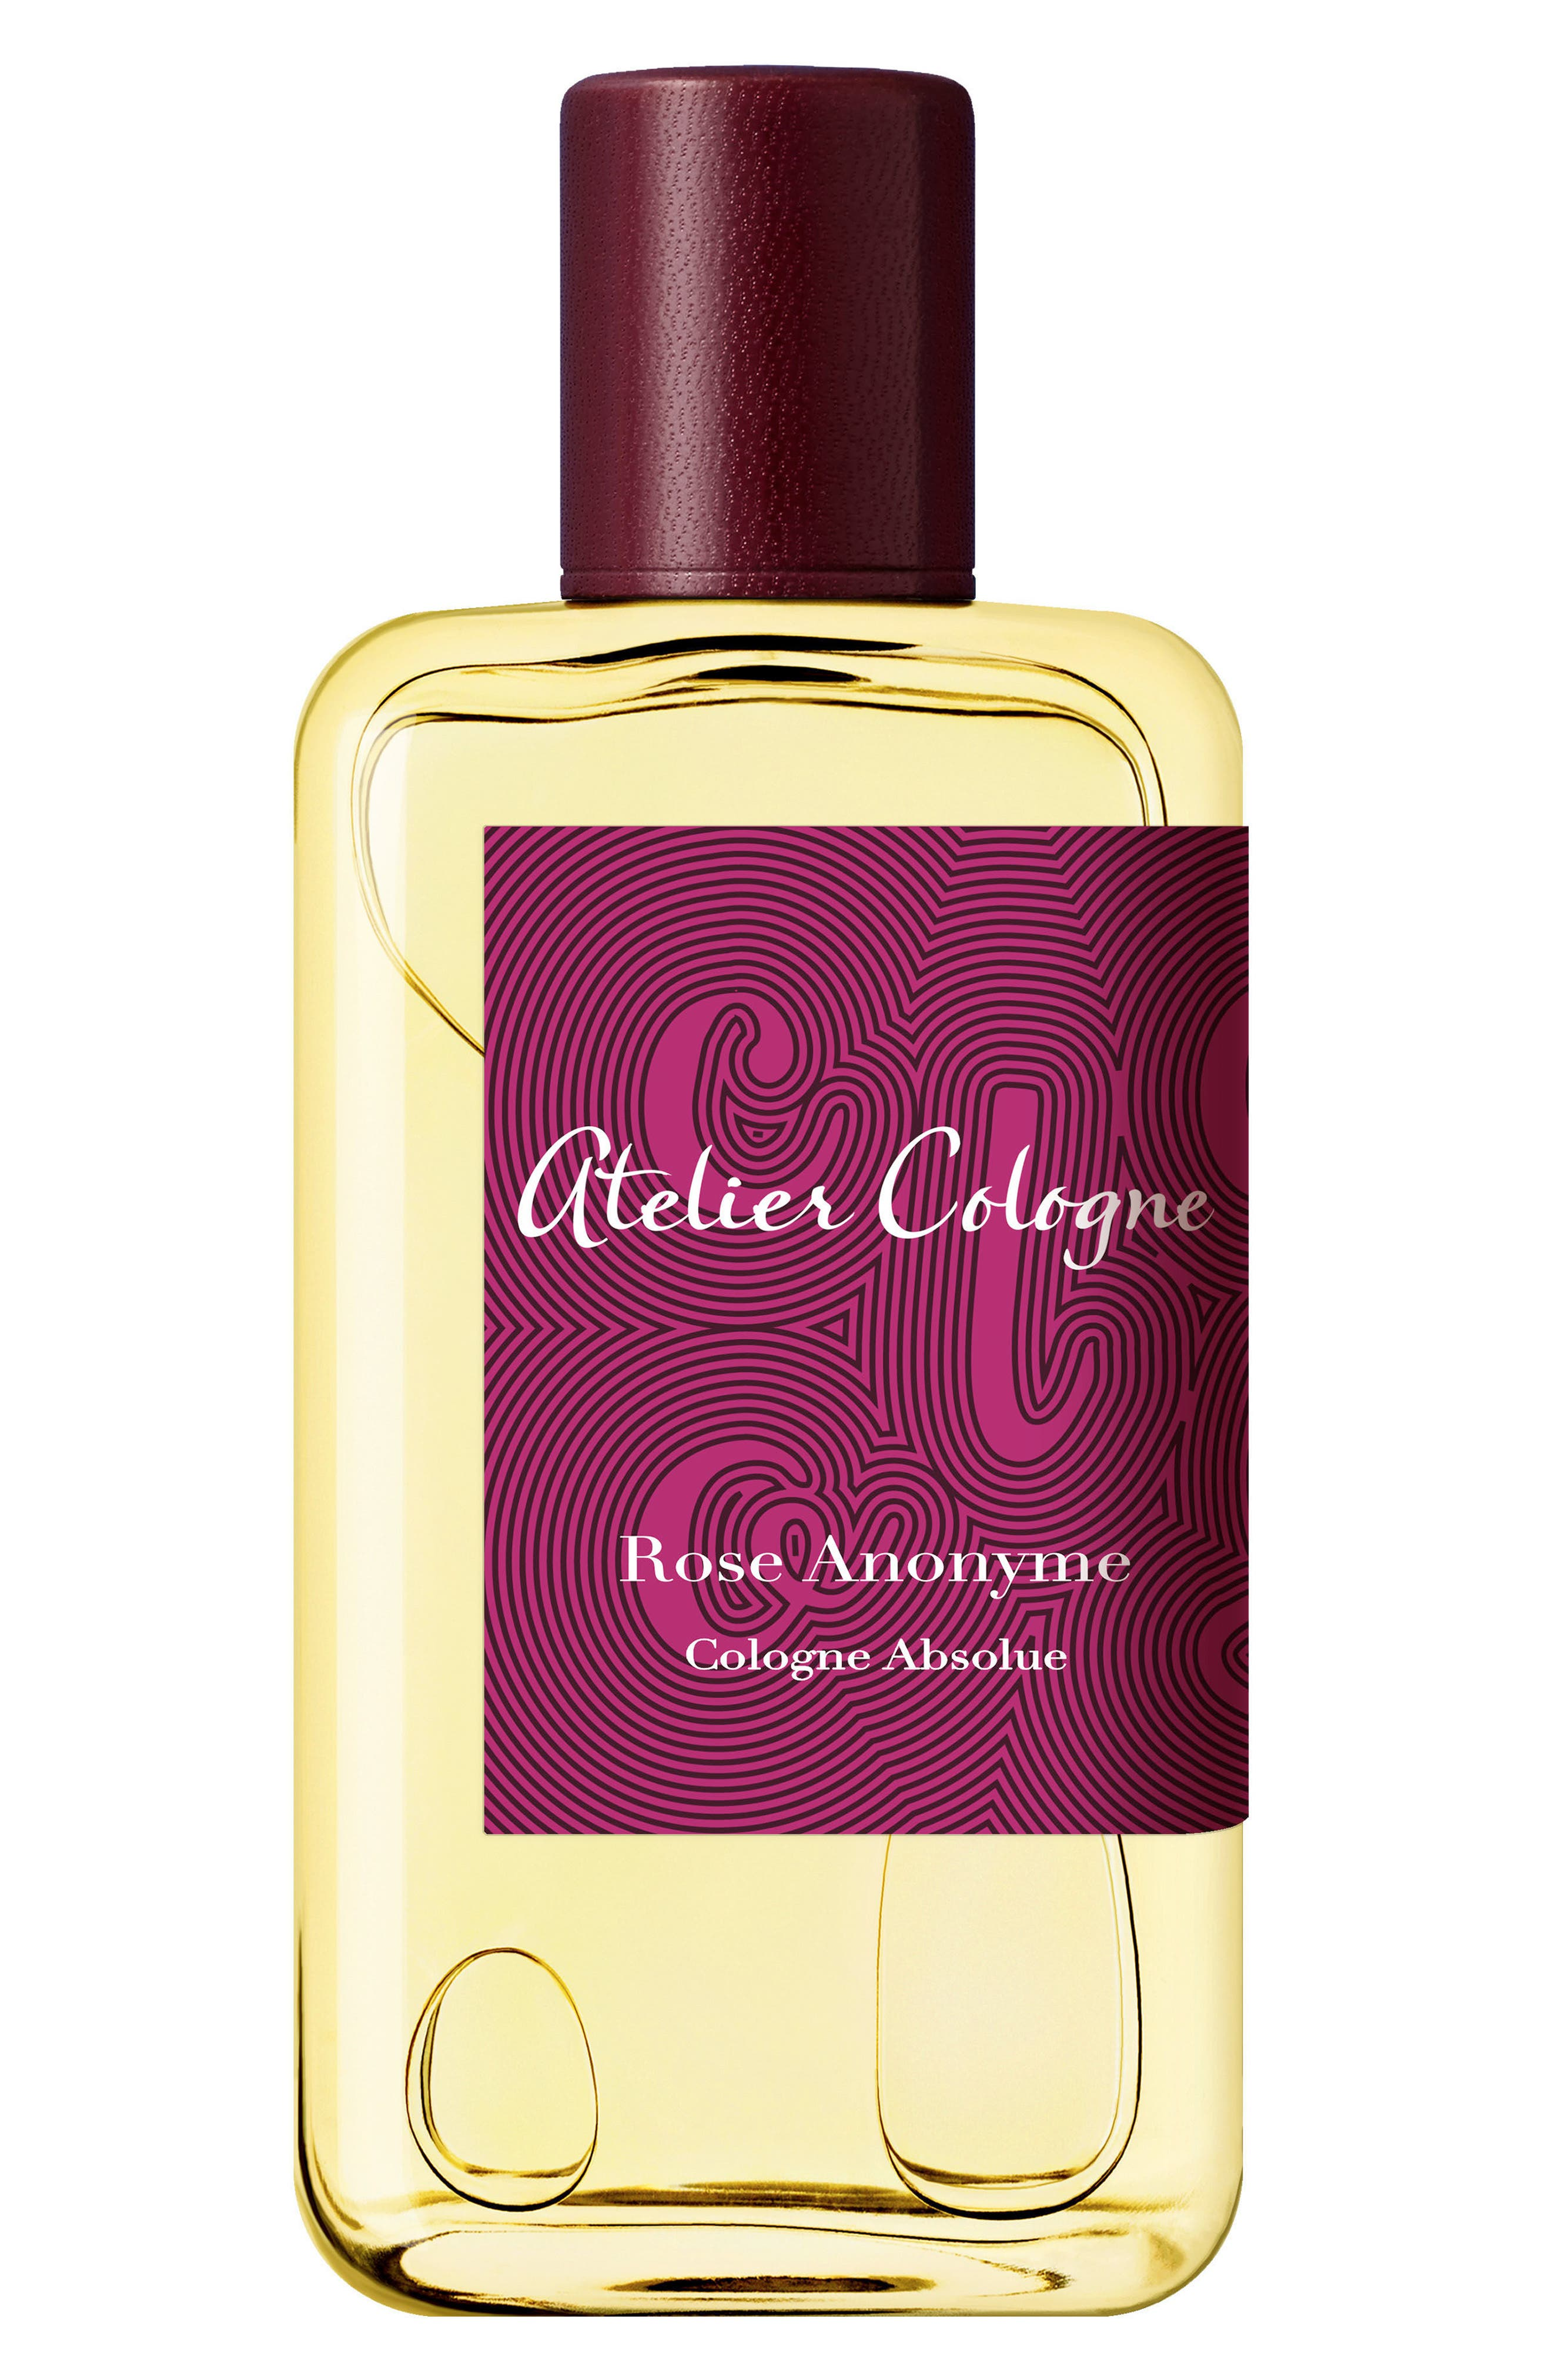 ATELIER COLOGNE, Rose Anonyme Cologne Absolue, Alternate thumbnail 4, color, NO COLOR